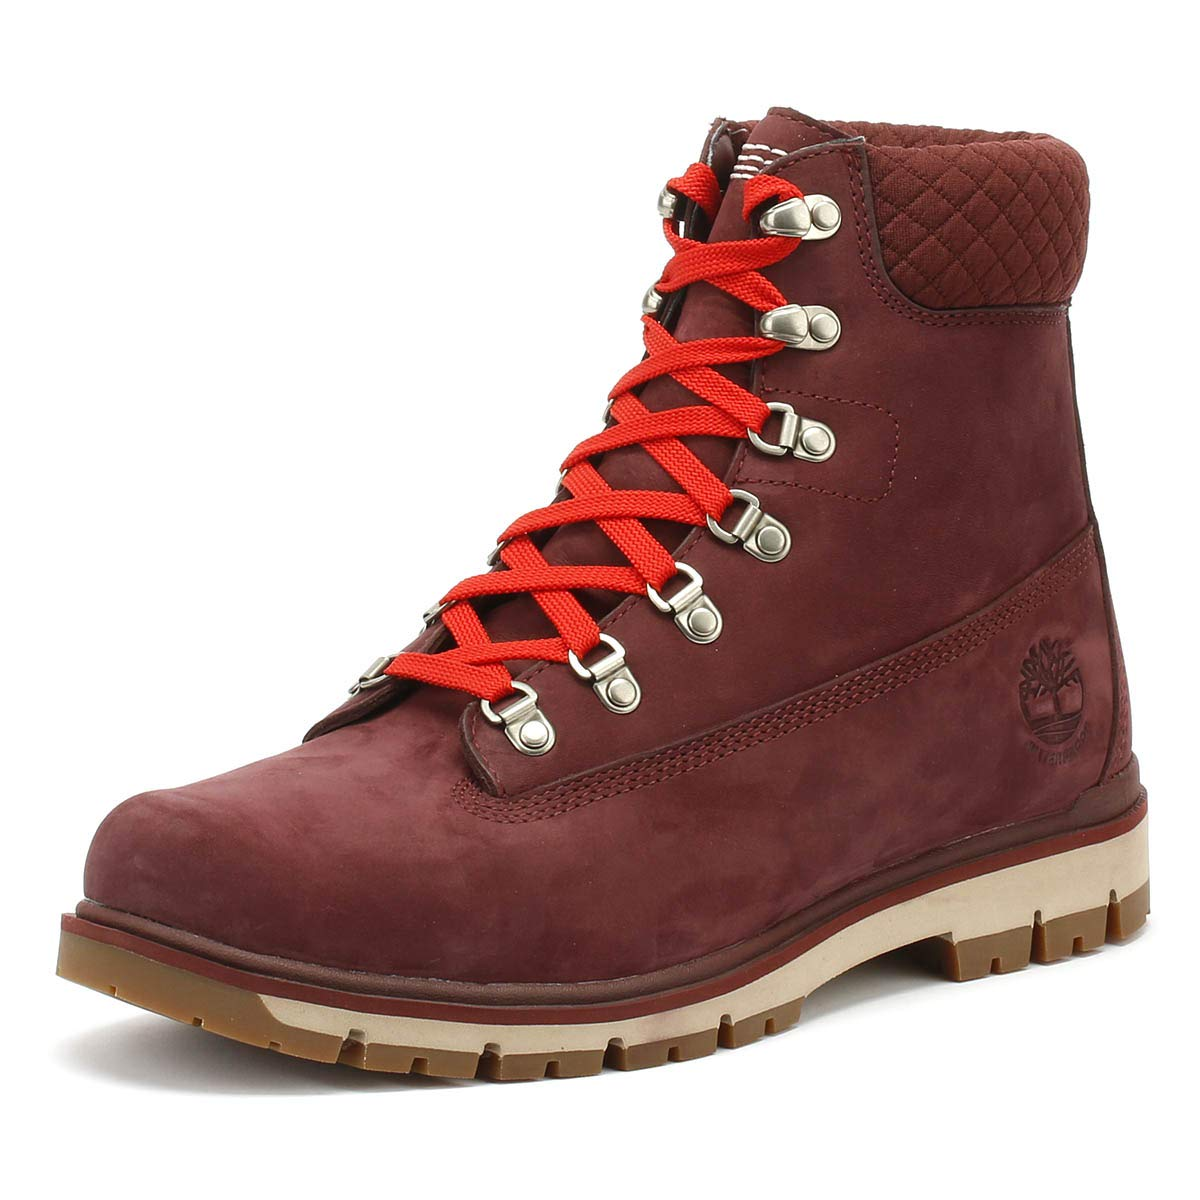 Timberland Mens Burgundy Radford 6 Inch D-Rings Boots  Amazon.co.uk  Shoes    Bags dfe05cc8a29